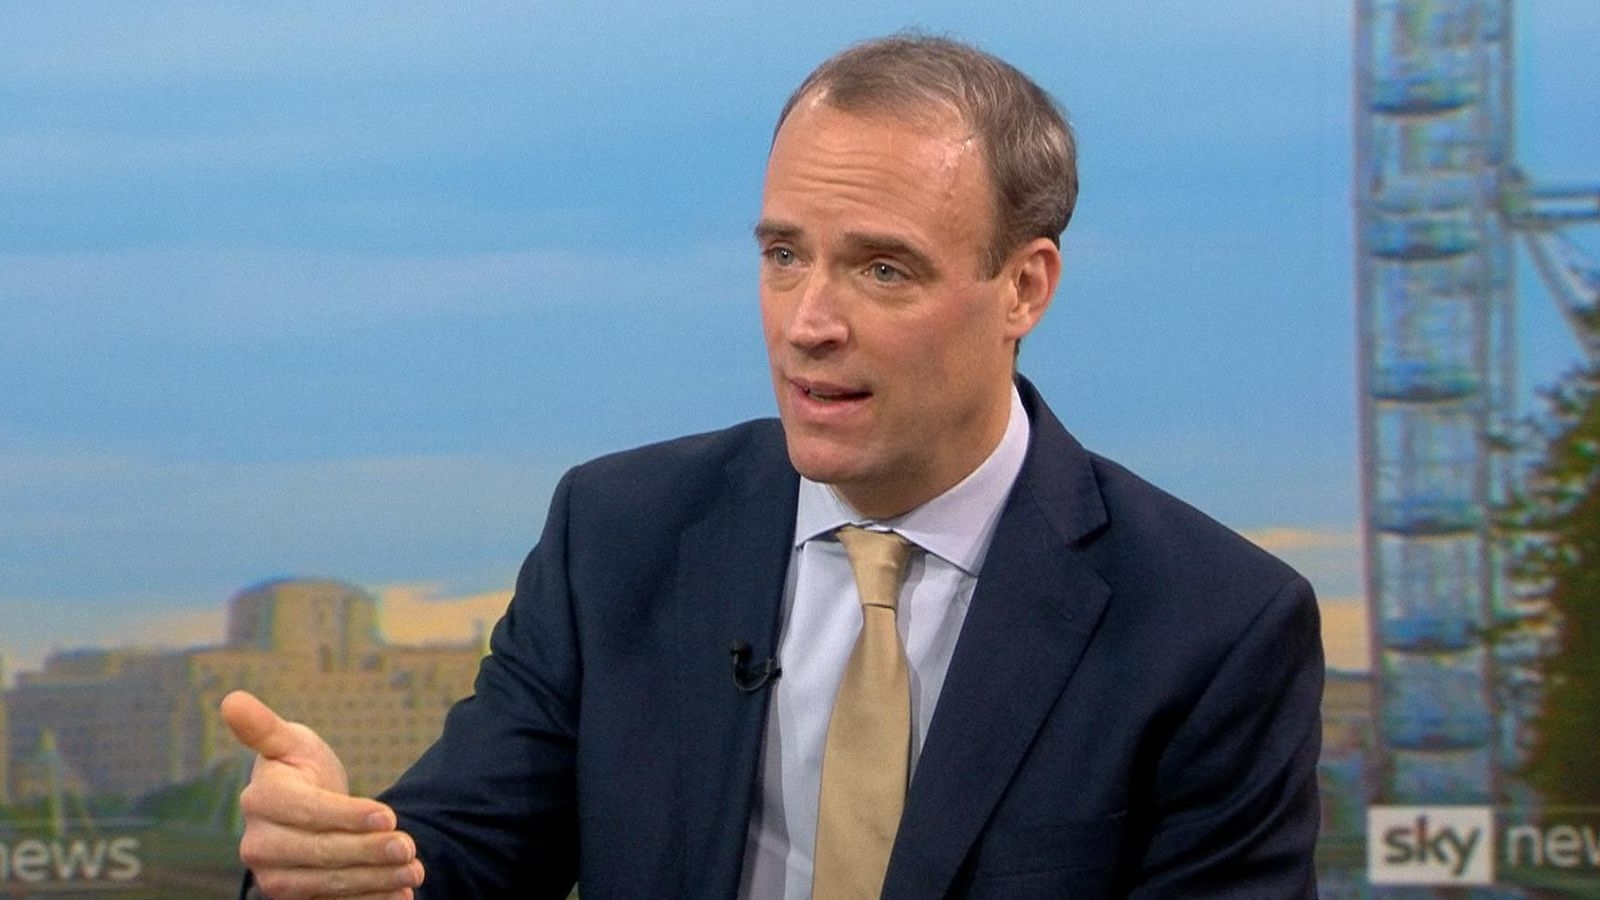 Sunday shows round-up: Brexit talks 'in last week or so', says Raab